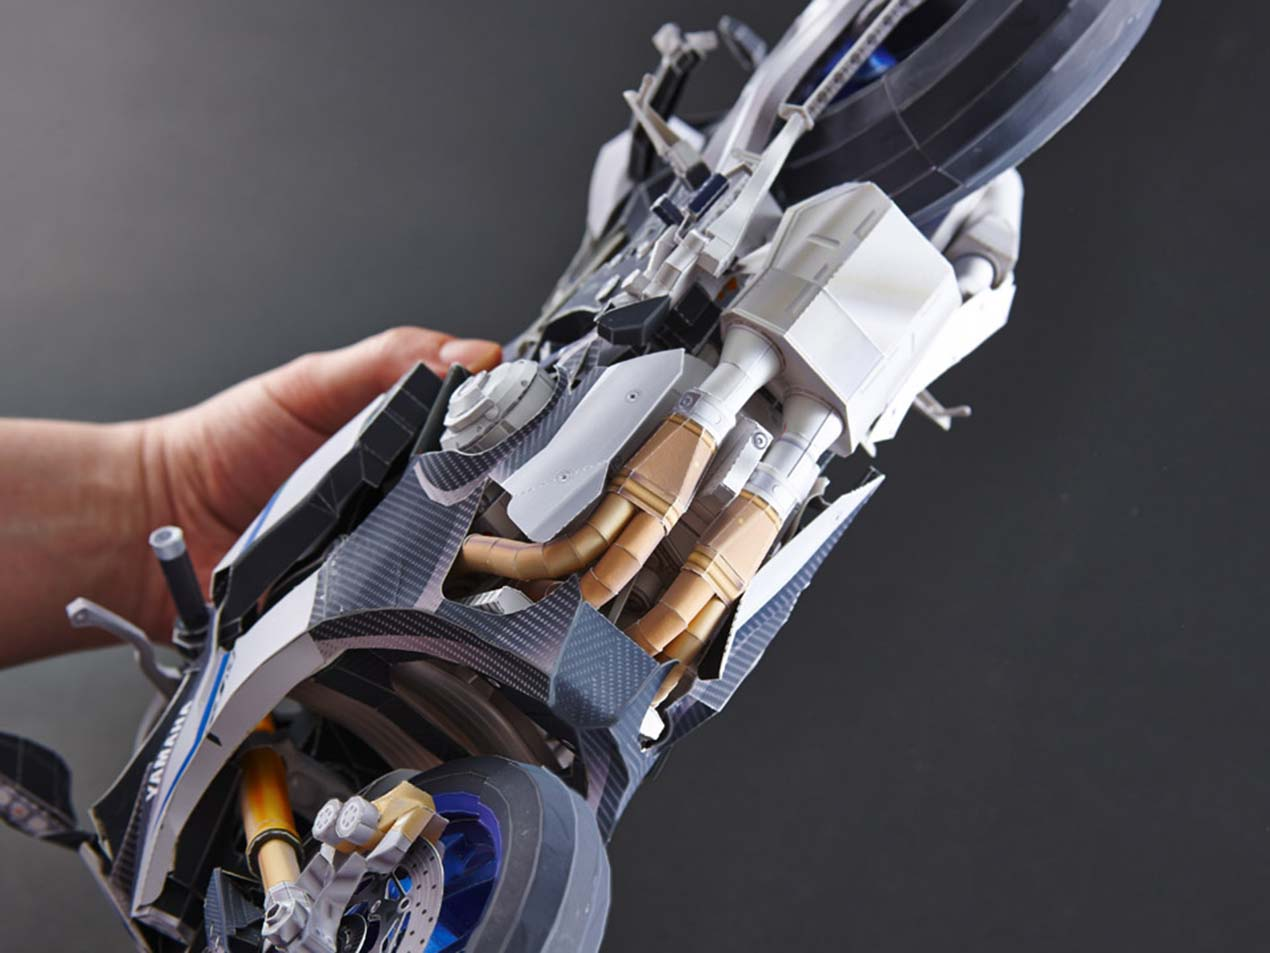 Make a Scale Model of the Yamaha YZF-R1M, Out of Paper - Asphalt & Rubber